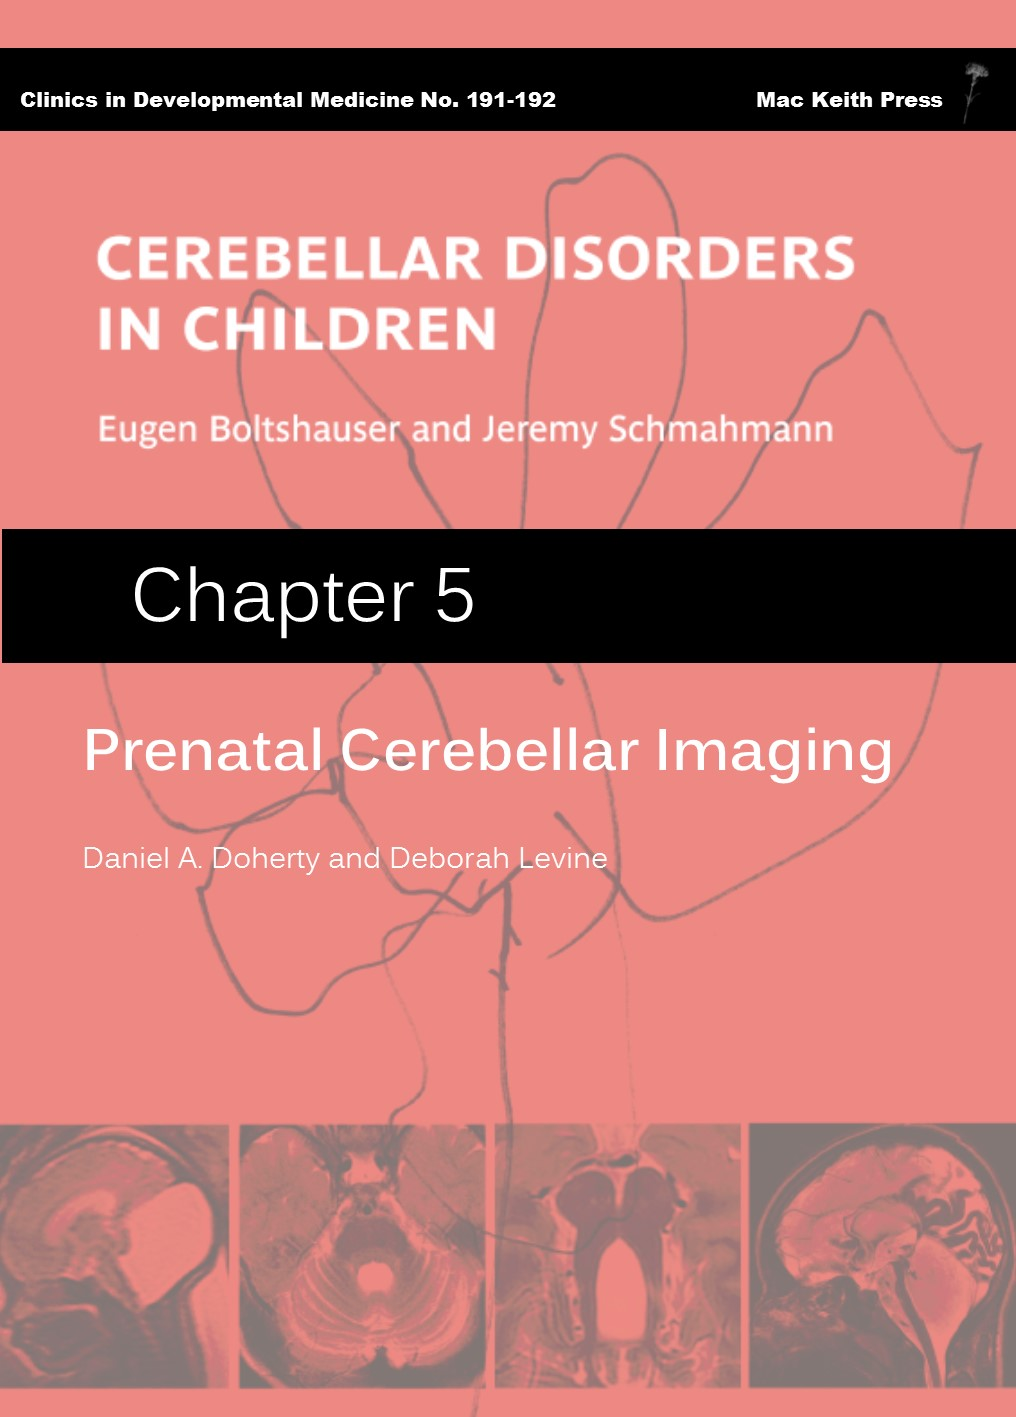 Prenatal Cerebellar Imaging  - Cerebellar Disorders in Children (Chapter 5) COVER IMAGE